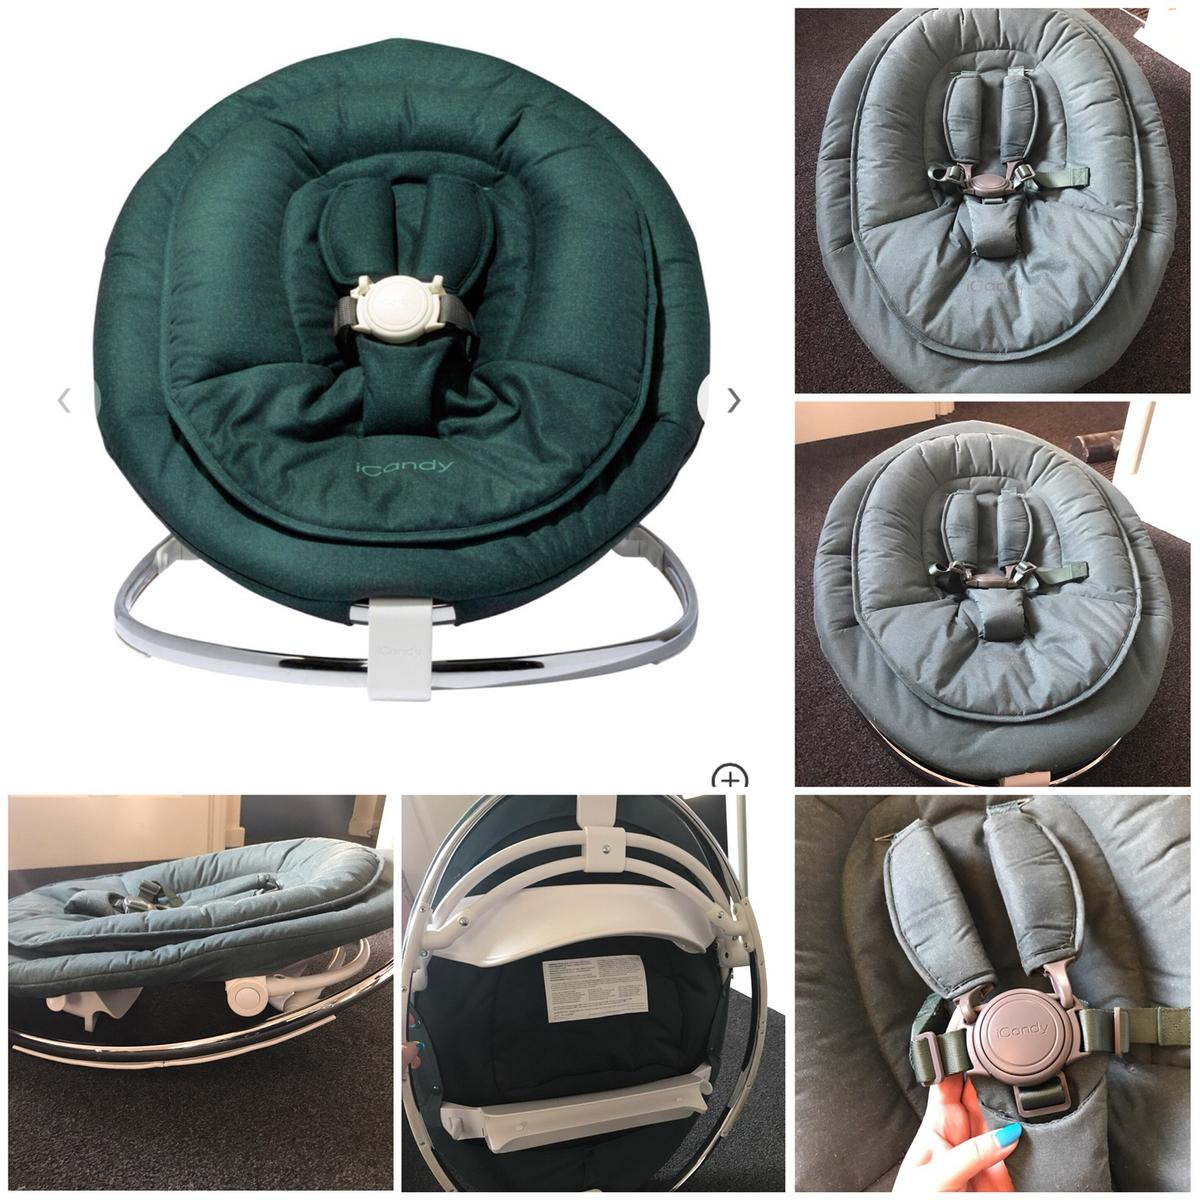 Egg Pram Parasol John Lewis Icandy Michair Newborn Pod Olive In Huncote For 50 00 For